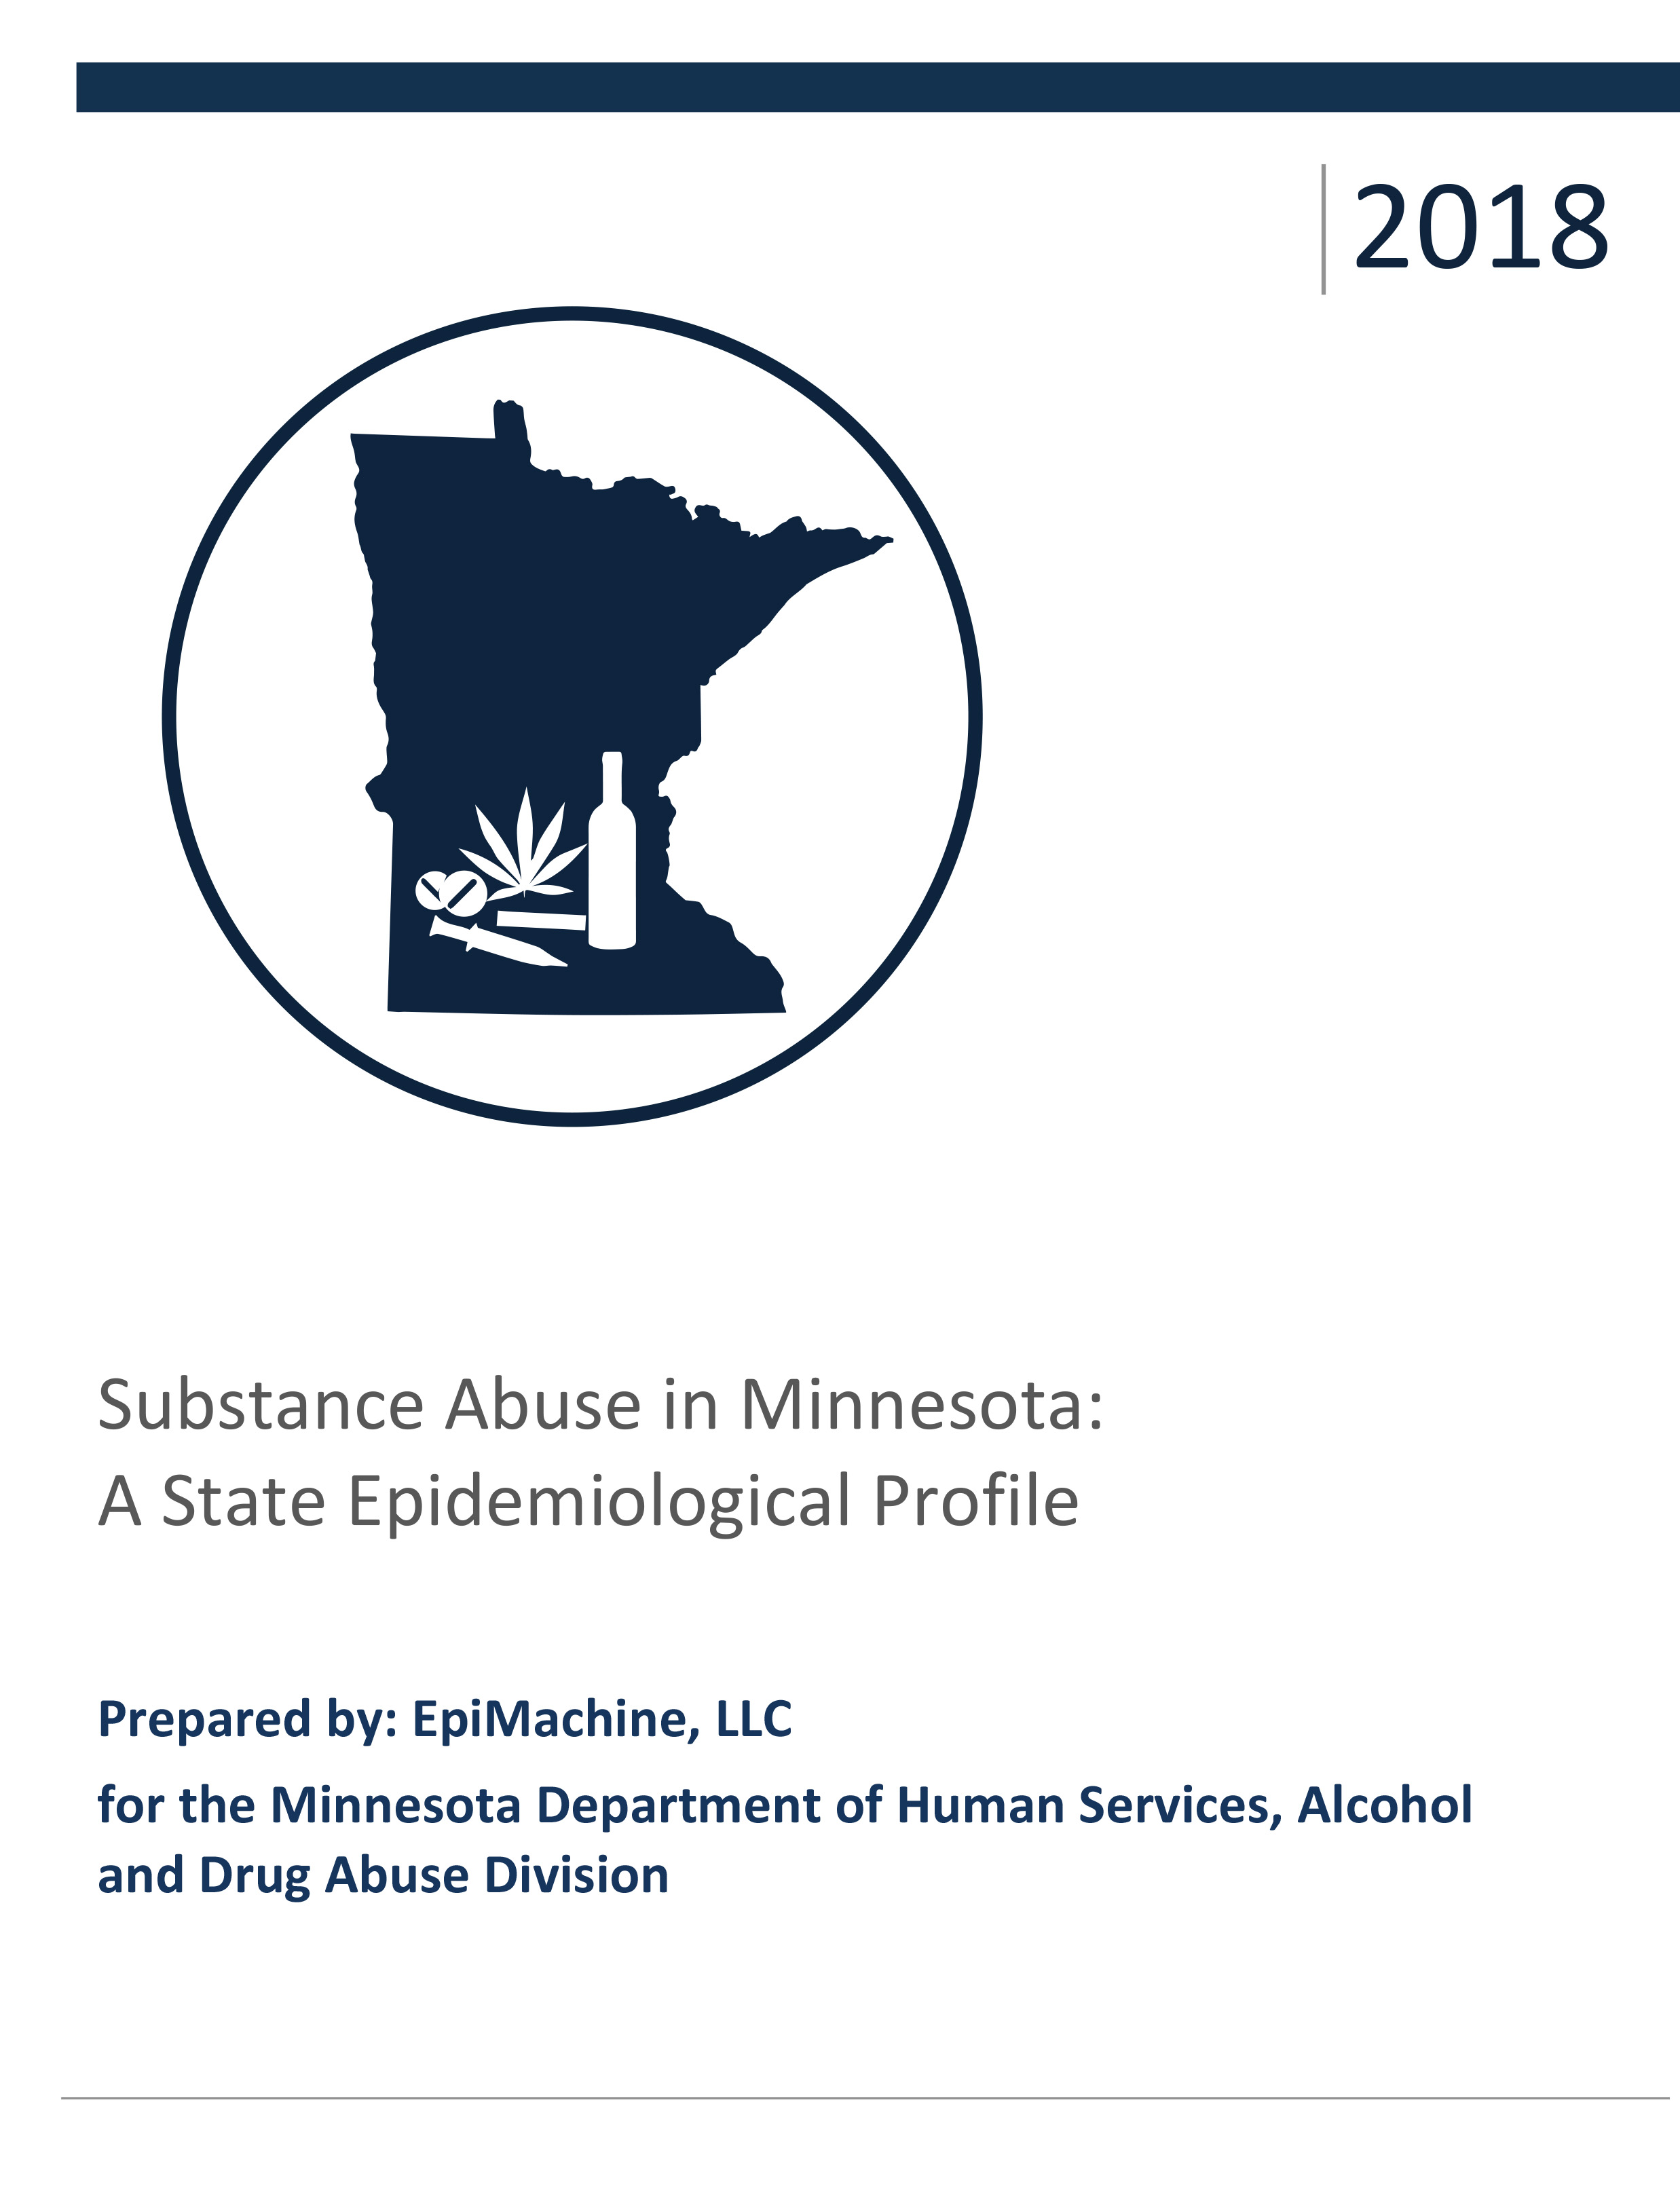 Cover of the 2018 Minnesota State Epidemiological Profile PDF